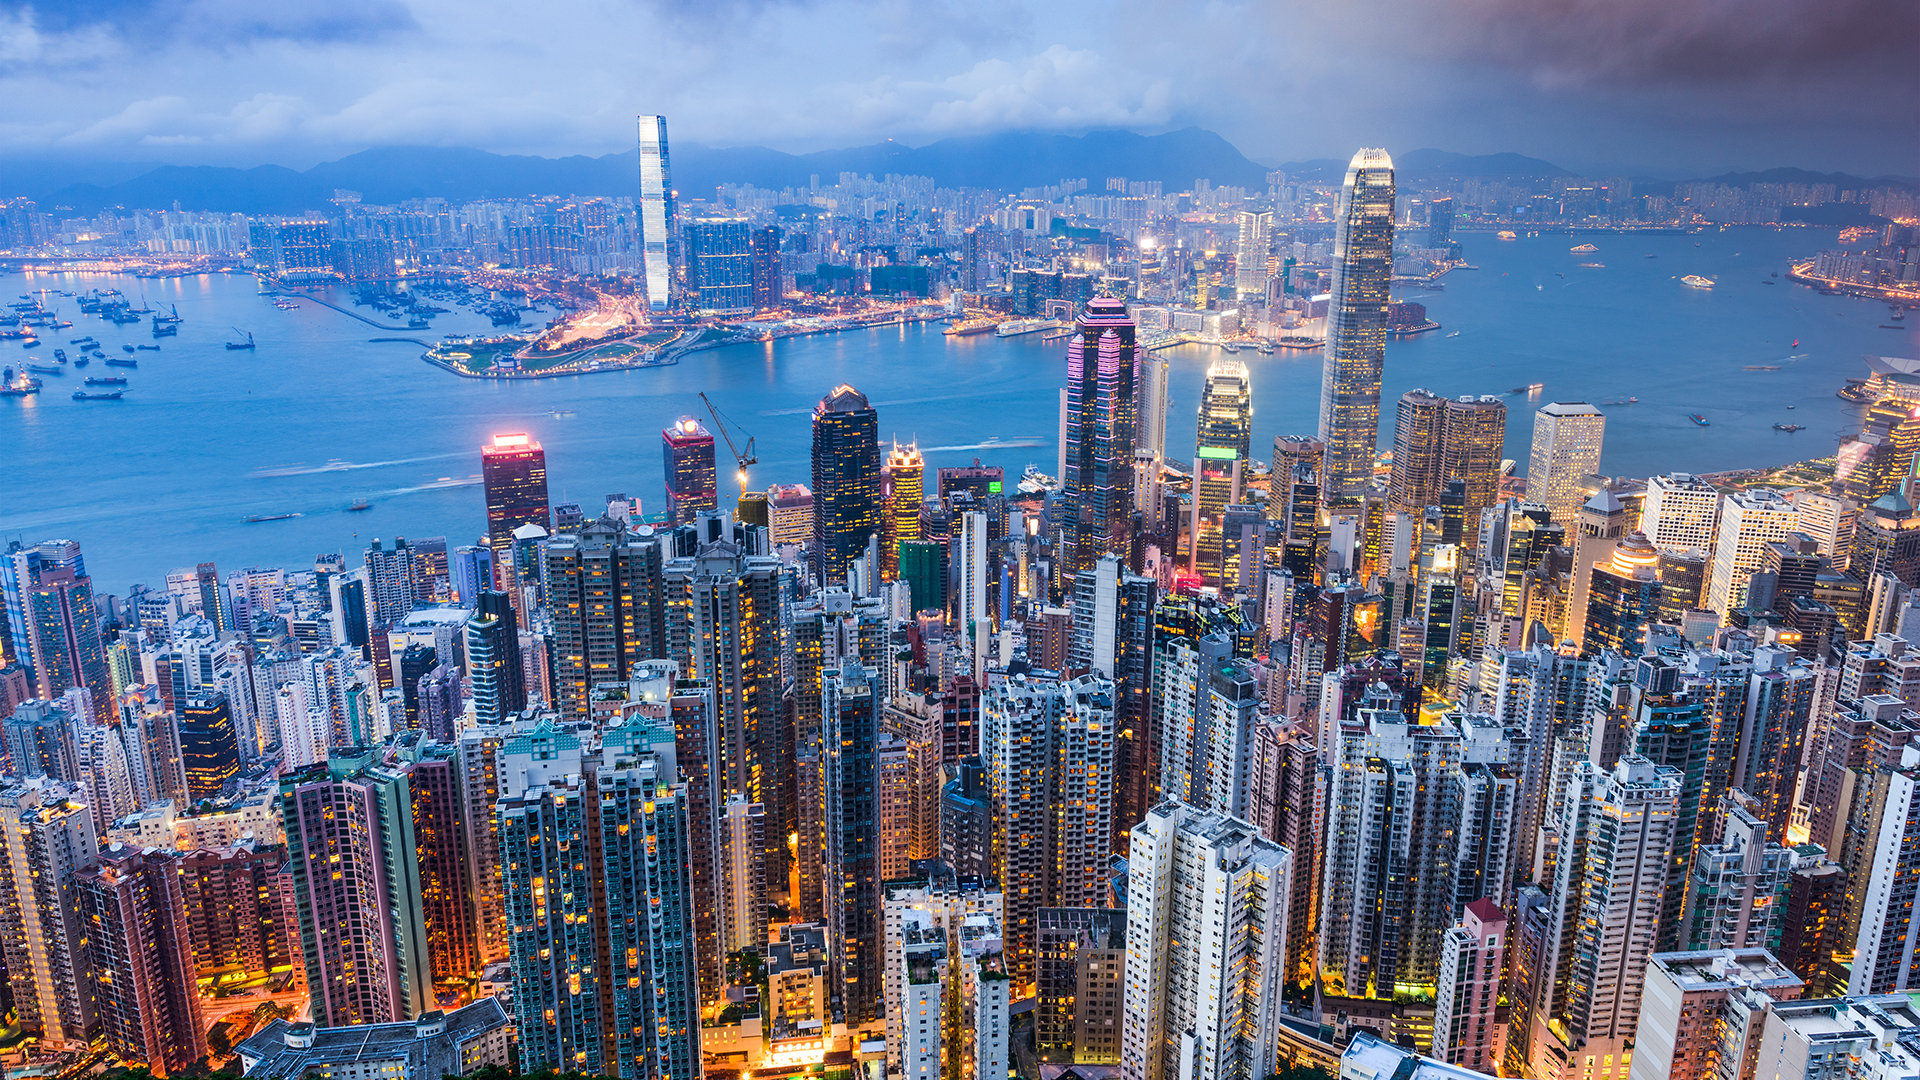 Raising finance in Hong Kong in challenging markets